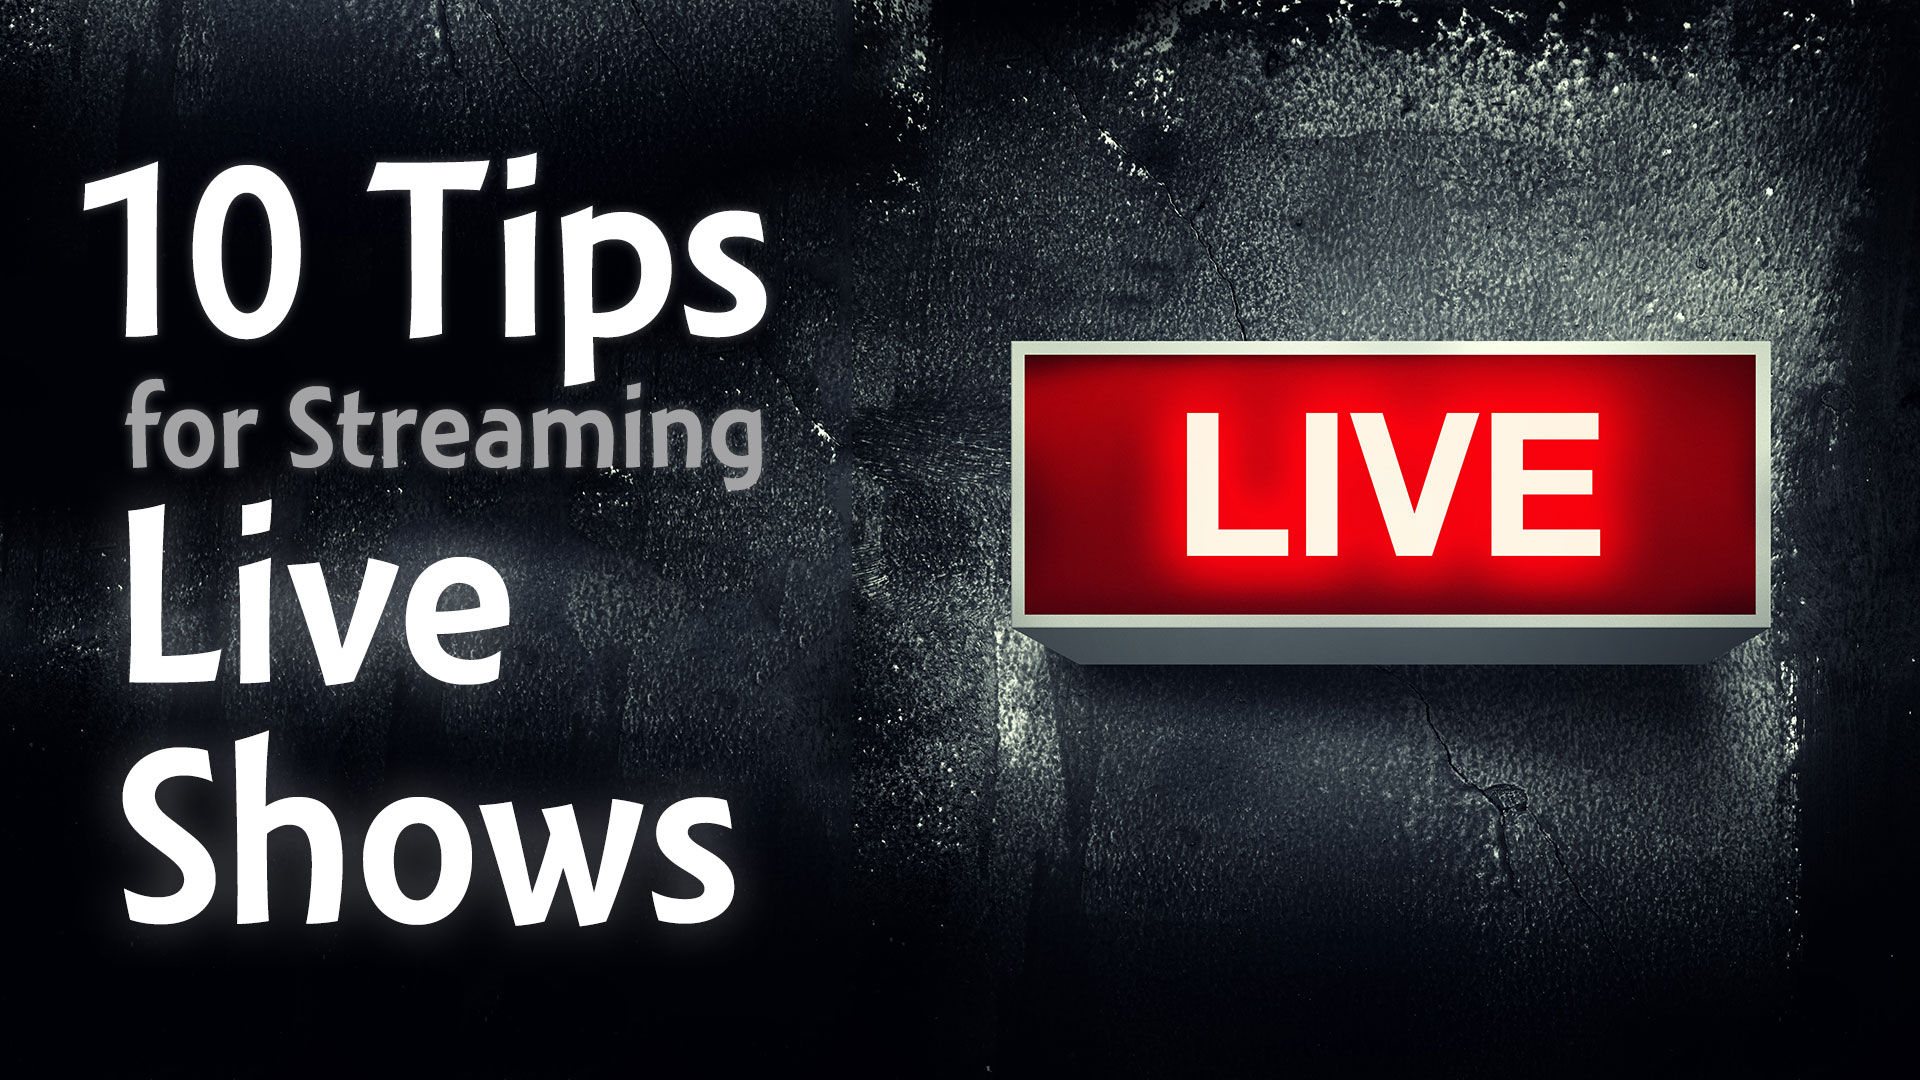 10 Tips for Streaming Live Shows (Periscope, Blab, YouTube Live, etc )